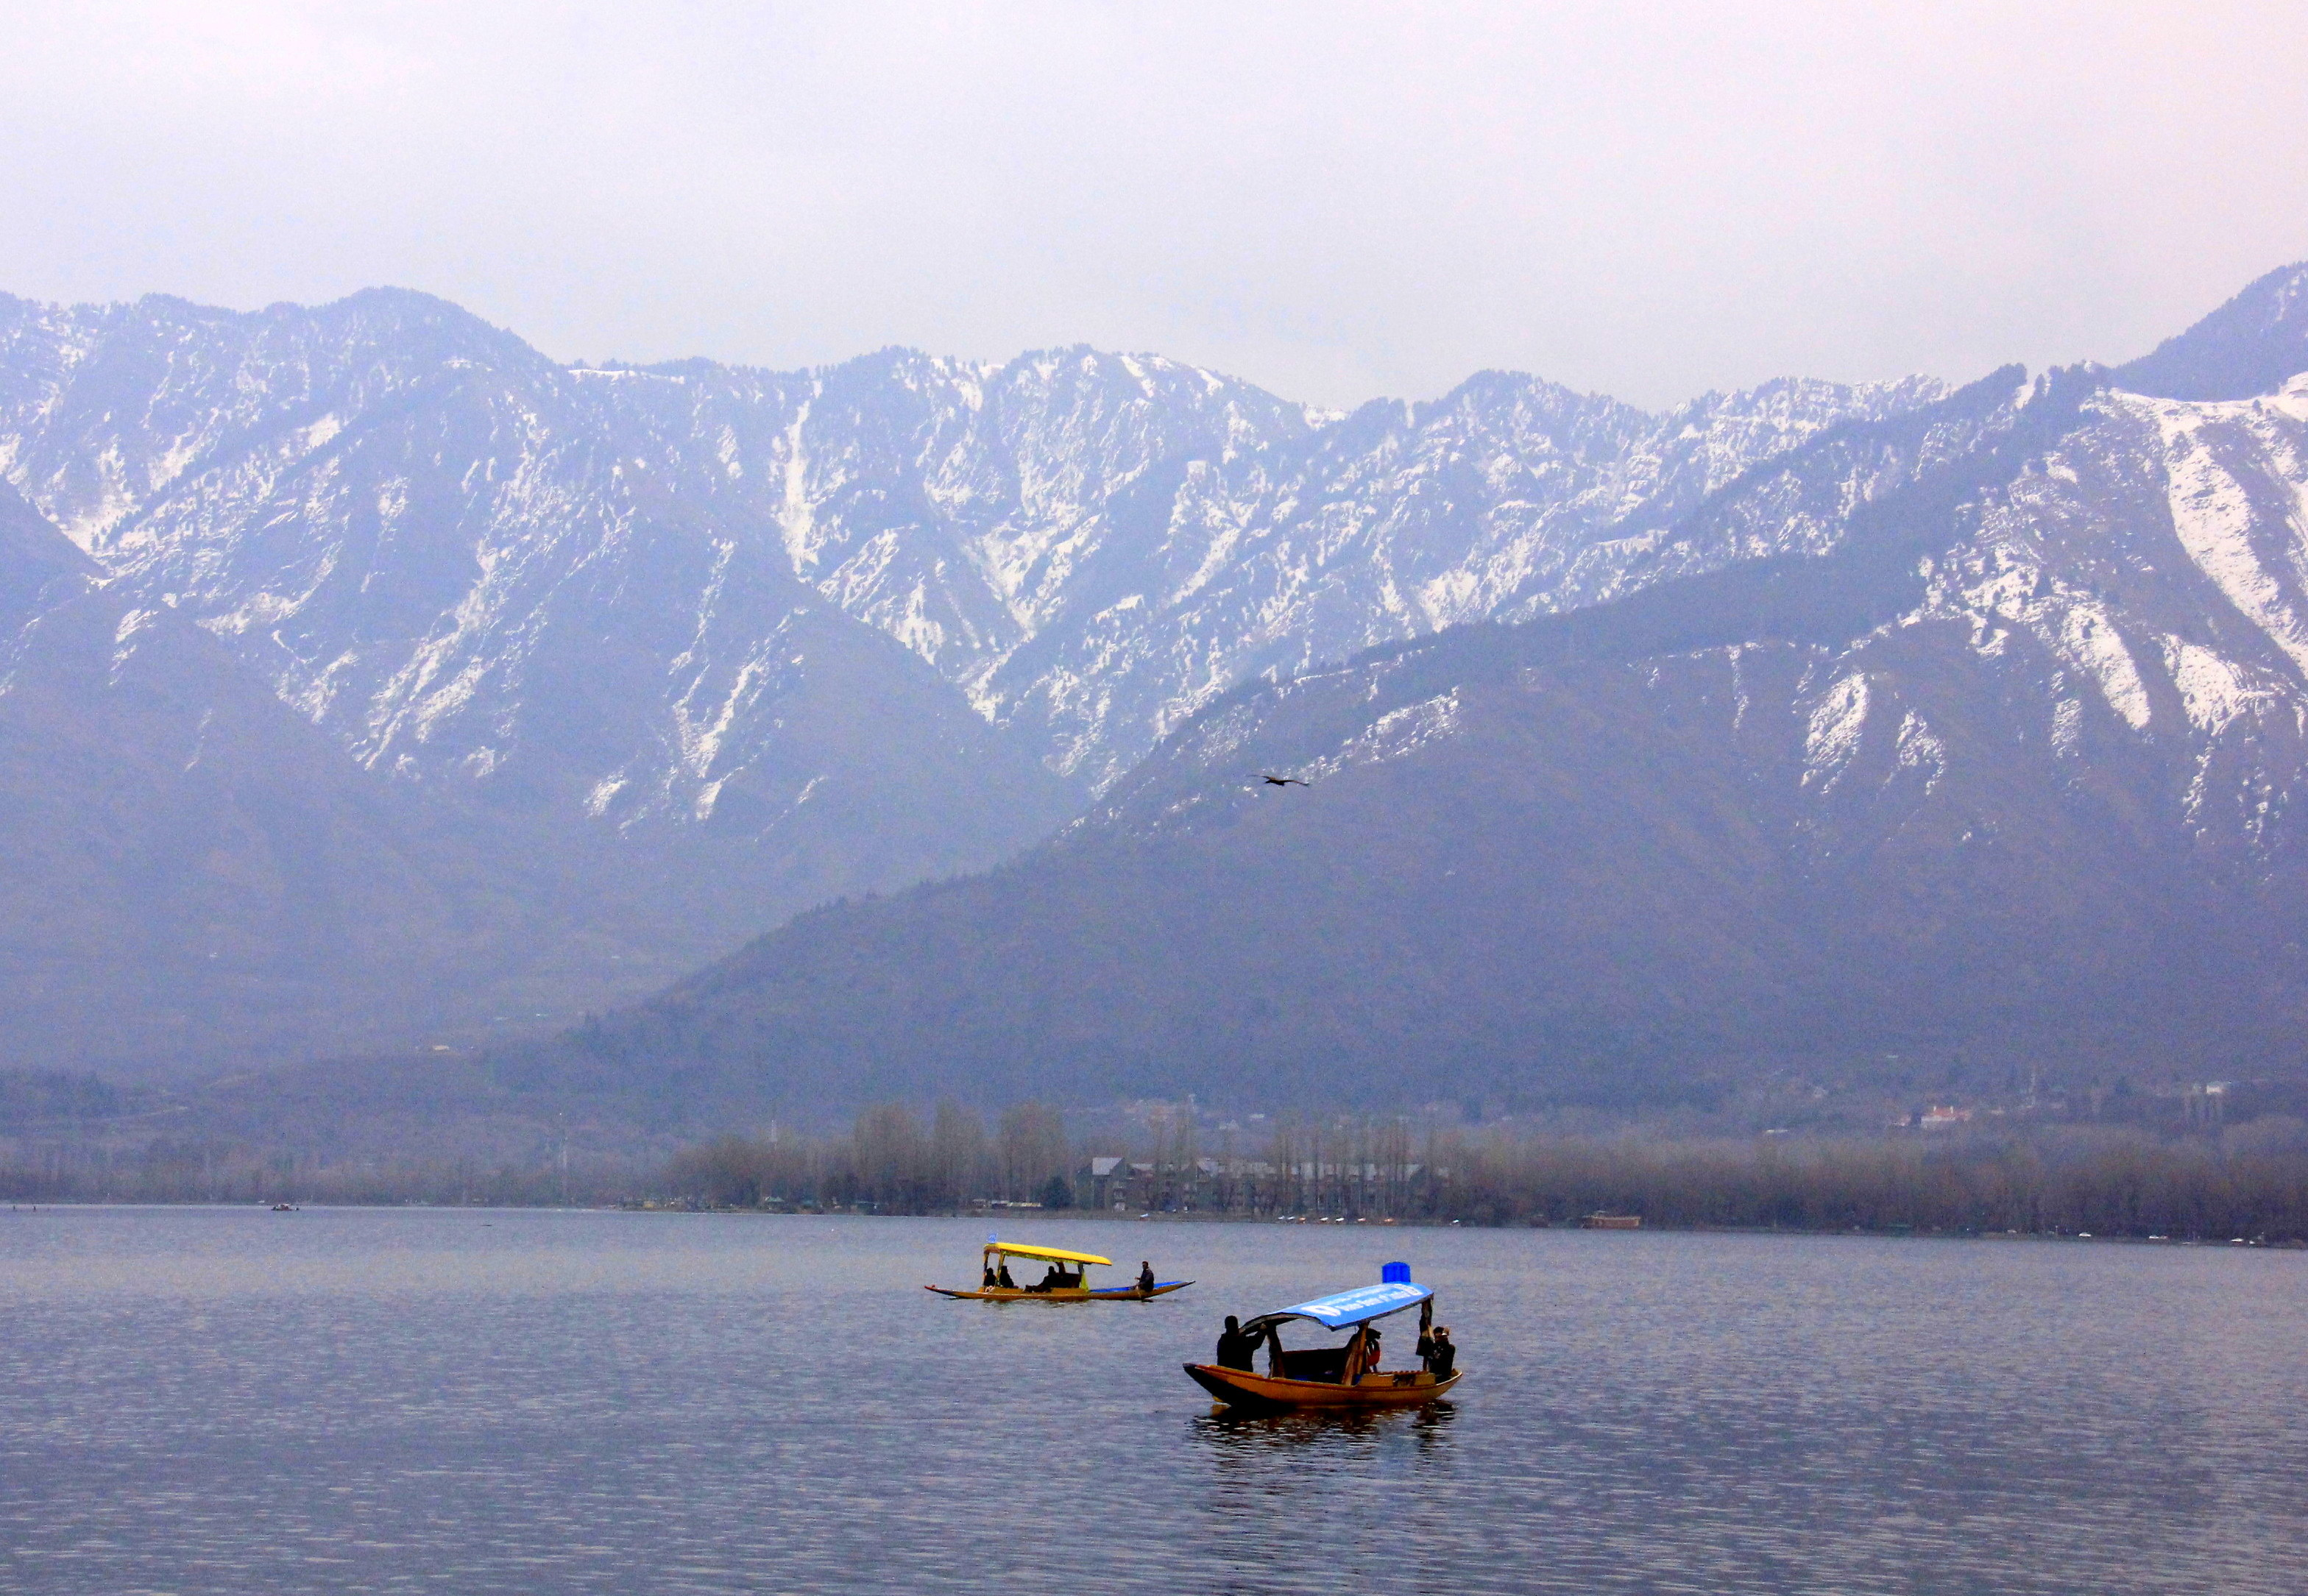 Kashmir in winter can be very cold